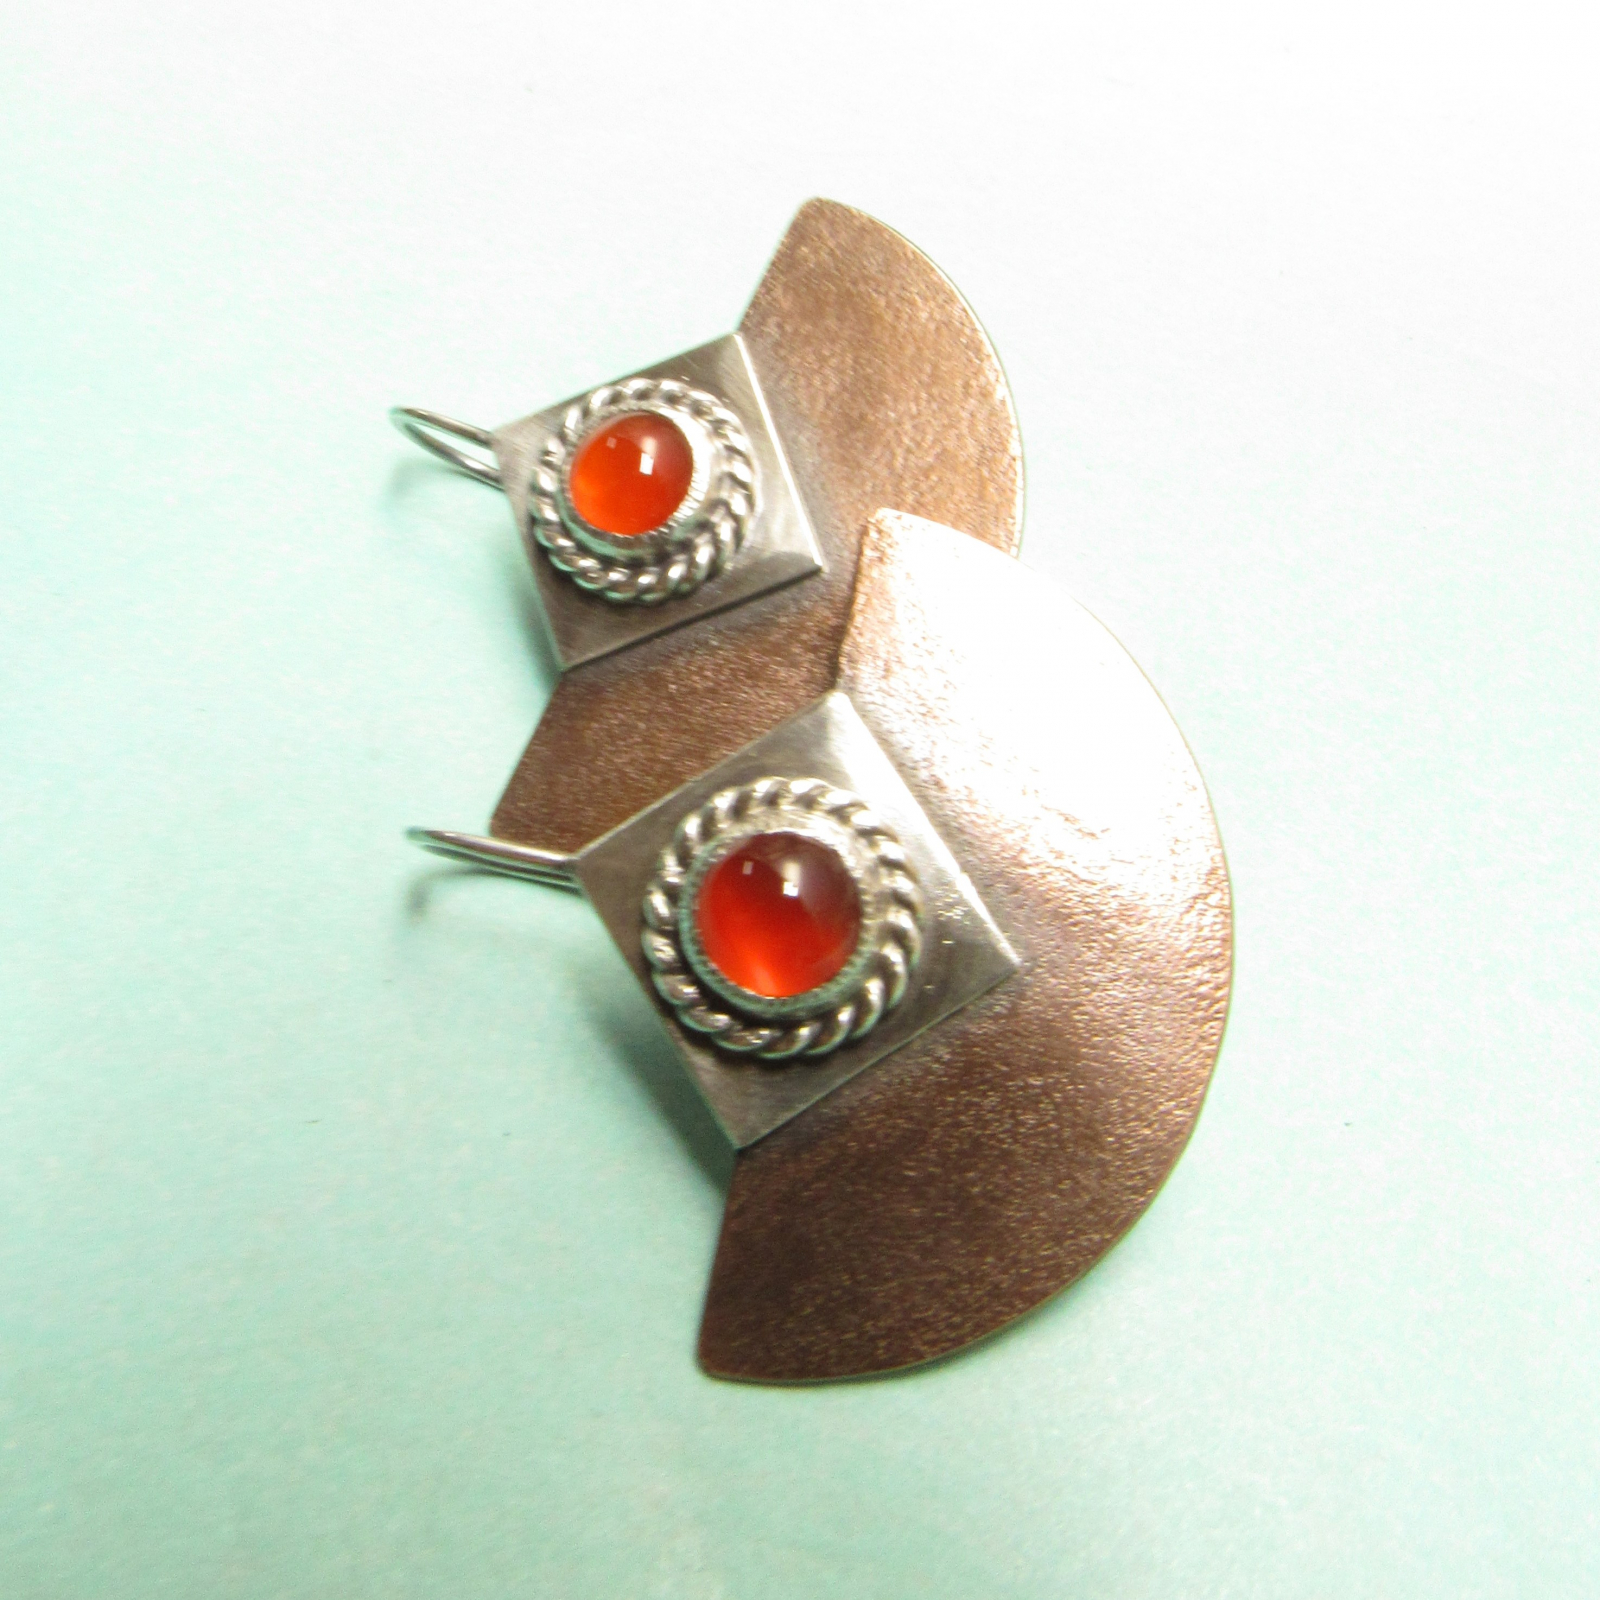 oval earrings shop jewelry gabriella kiss back august carnelian